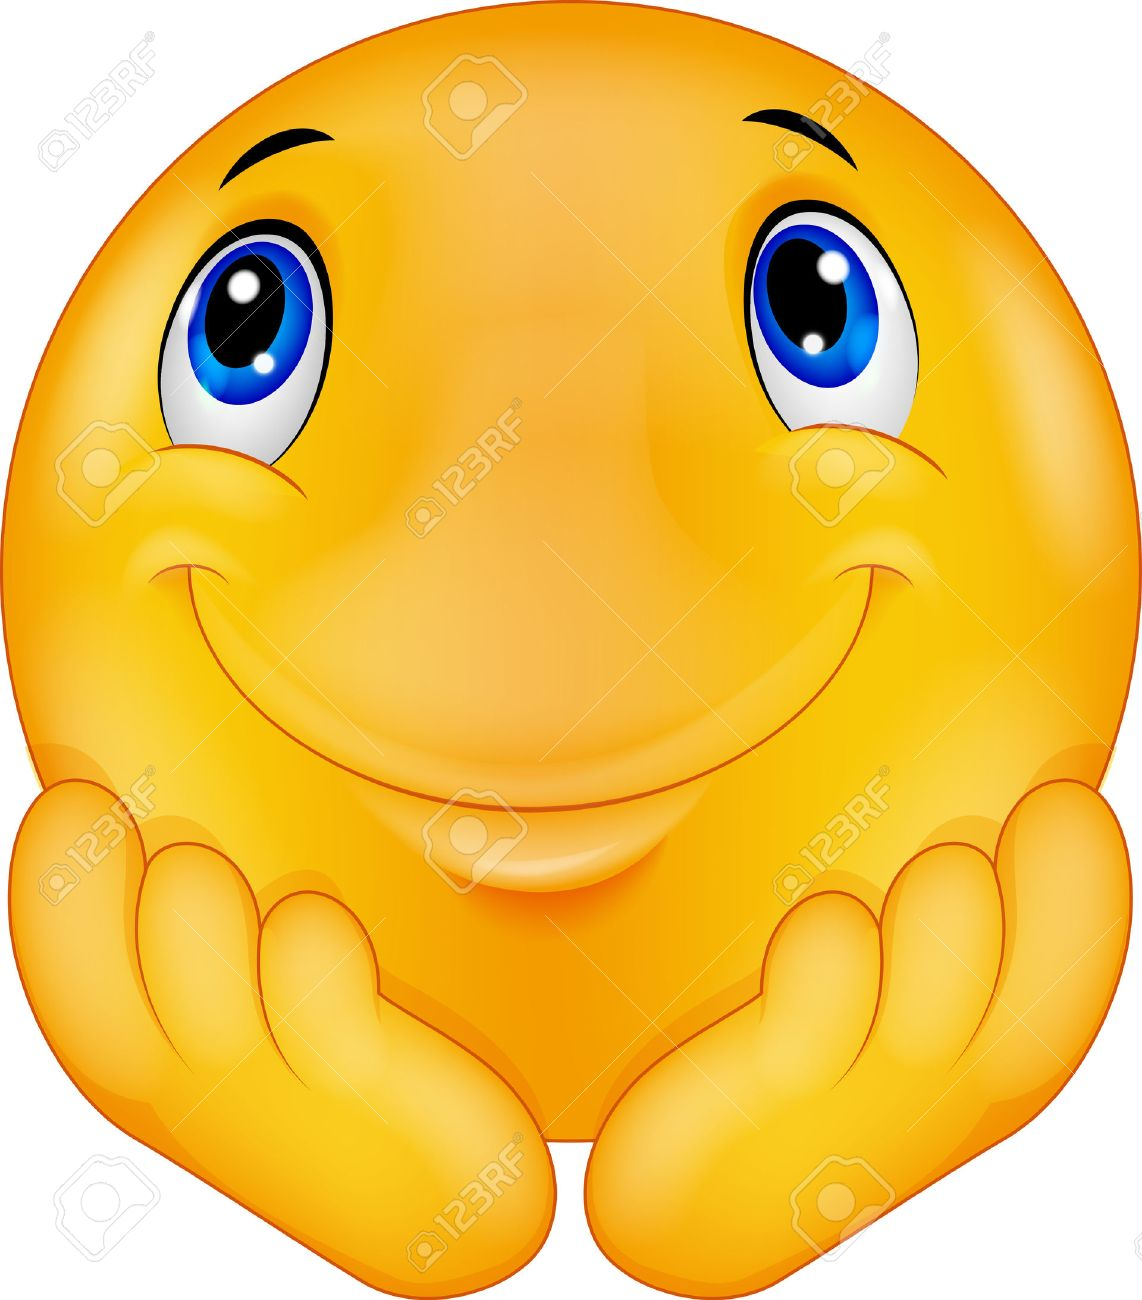 Happy face stock photos royalty free happy face images thinking emoticon smiley cartoon voltagebd Image collections